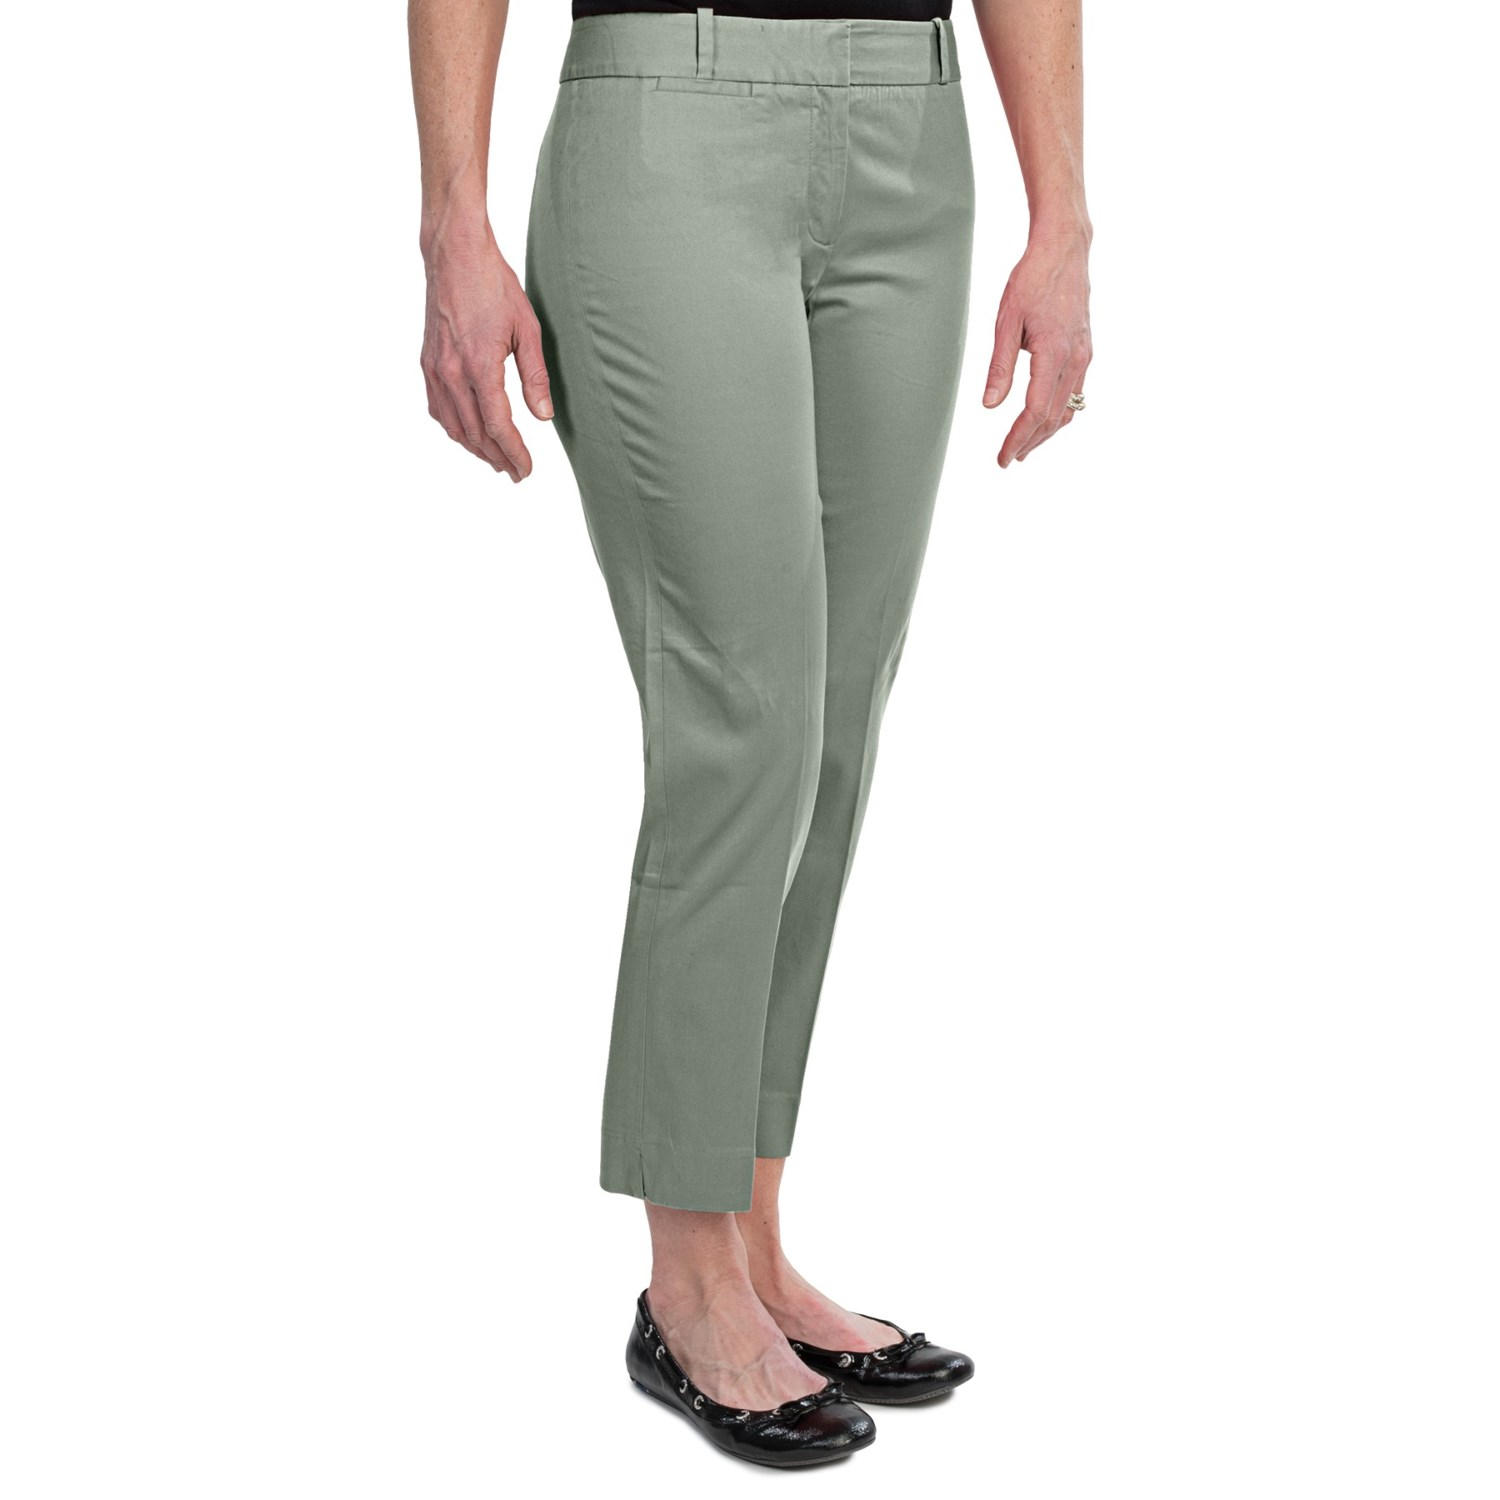 Lastest Cotton Sport Pants Women Casual Loose Womenu0026#39;s Harem Pants Thin Long Trousers For Women Black And ...